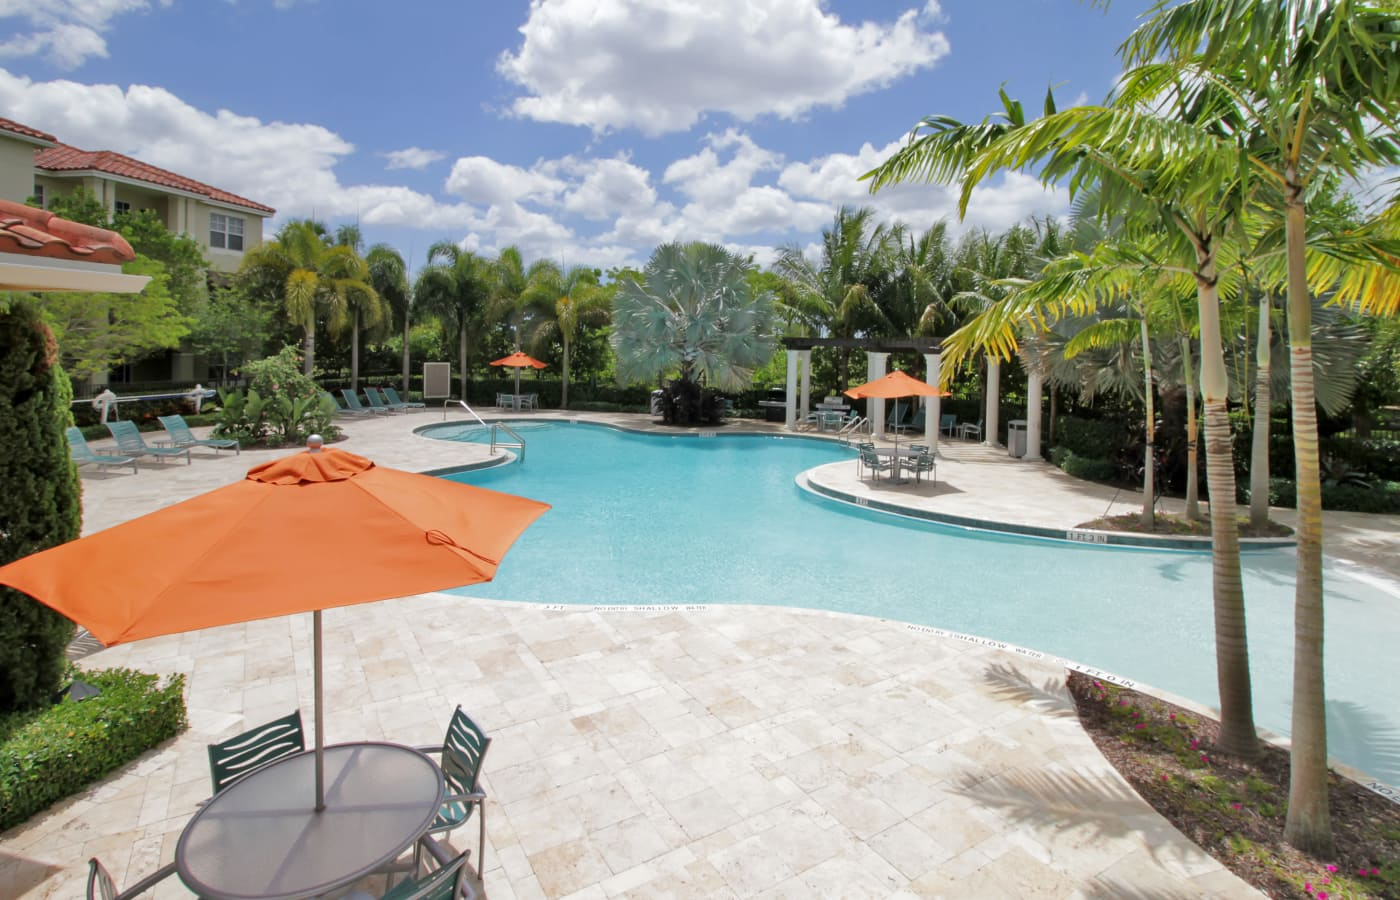 Gorgeous swimming pool area on a beautiful day at IMT Miramar in Miramar, FL